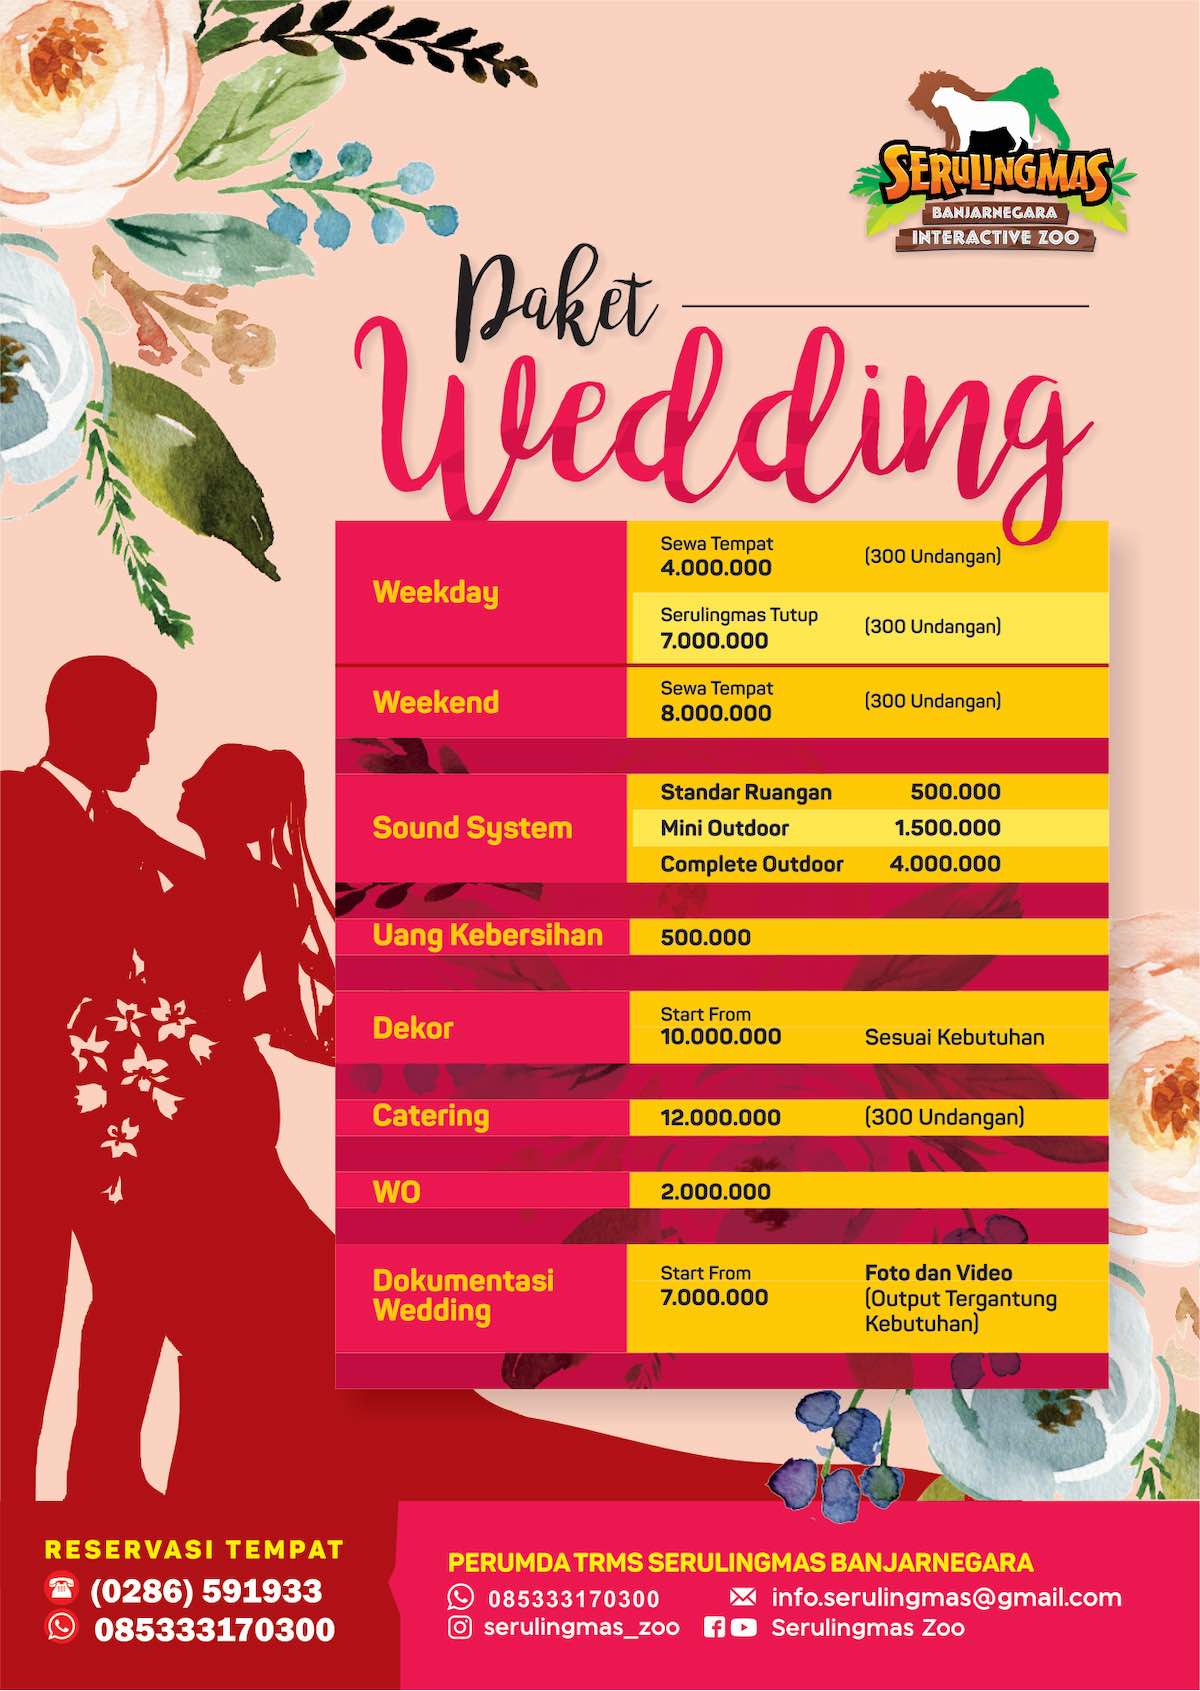 PAKET WEDDING SERULINGMAS